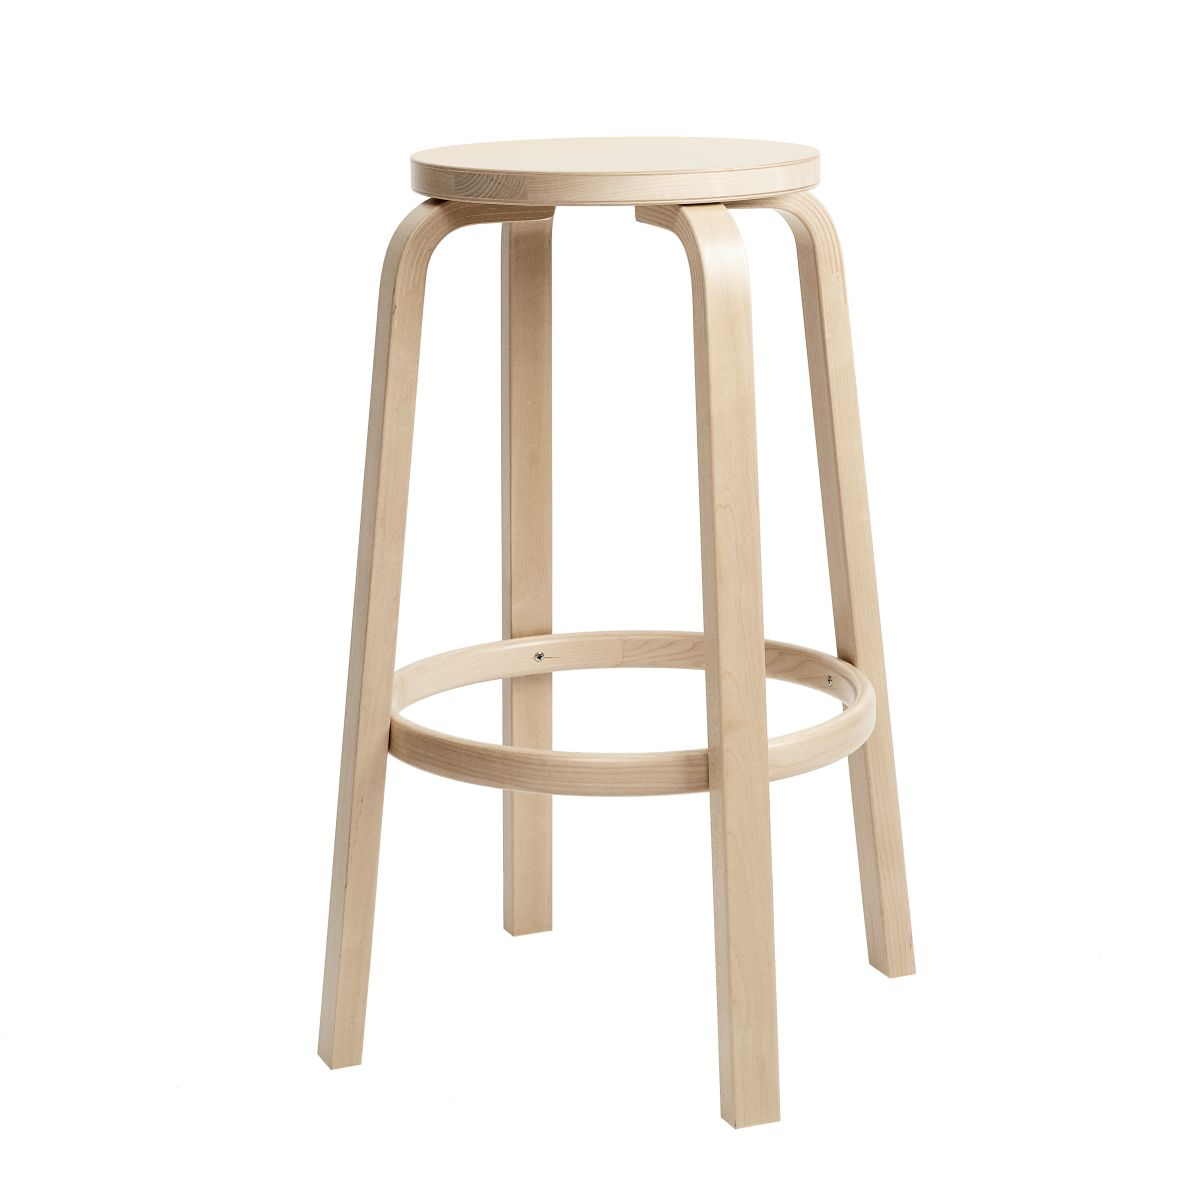 Bar-Stool-64-Clear-Lacquered_75Cm-2412084